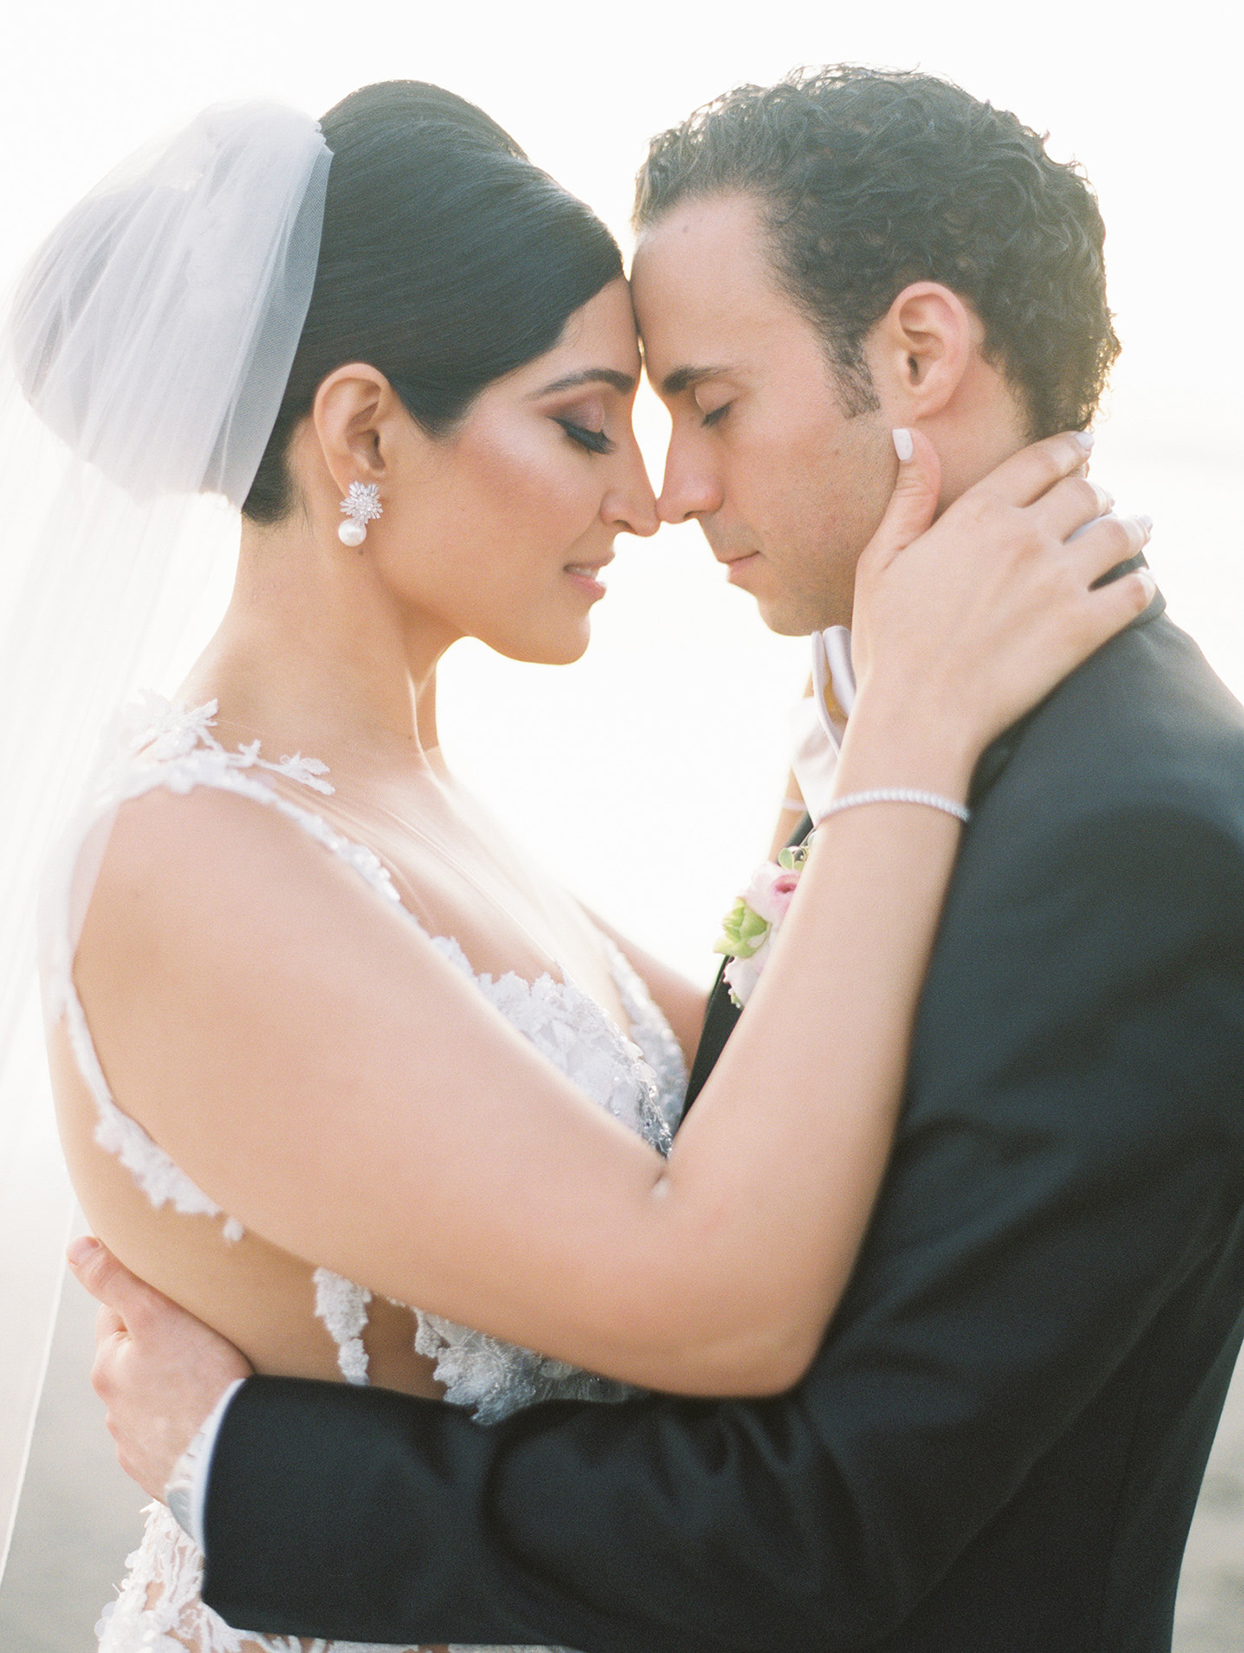 wedding couple embracing in close up portrait